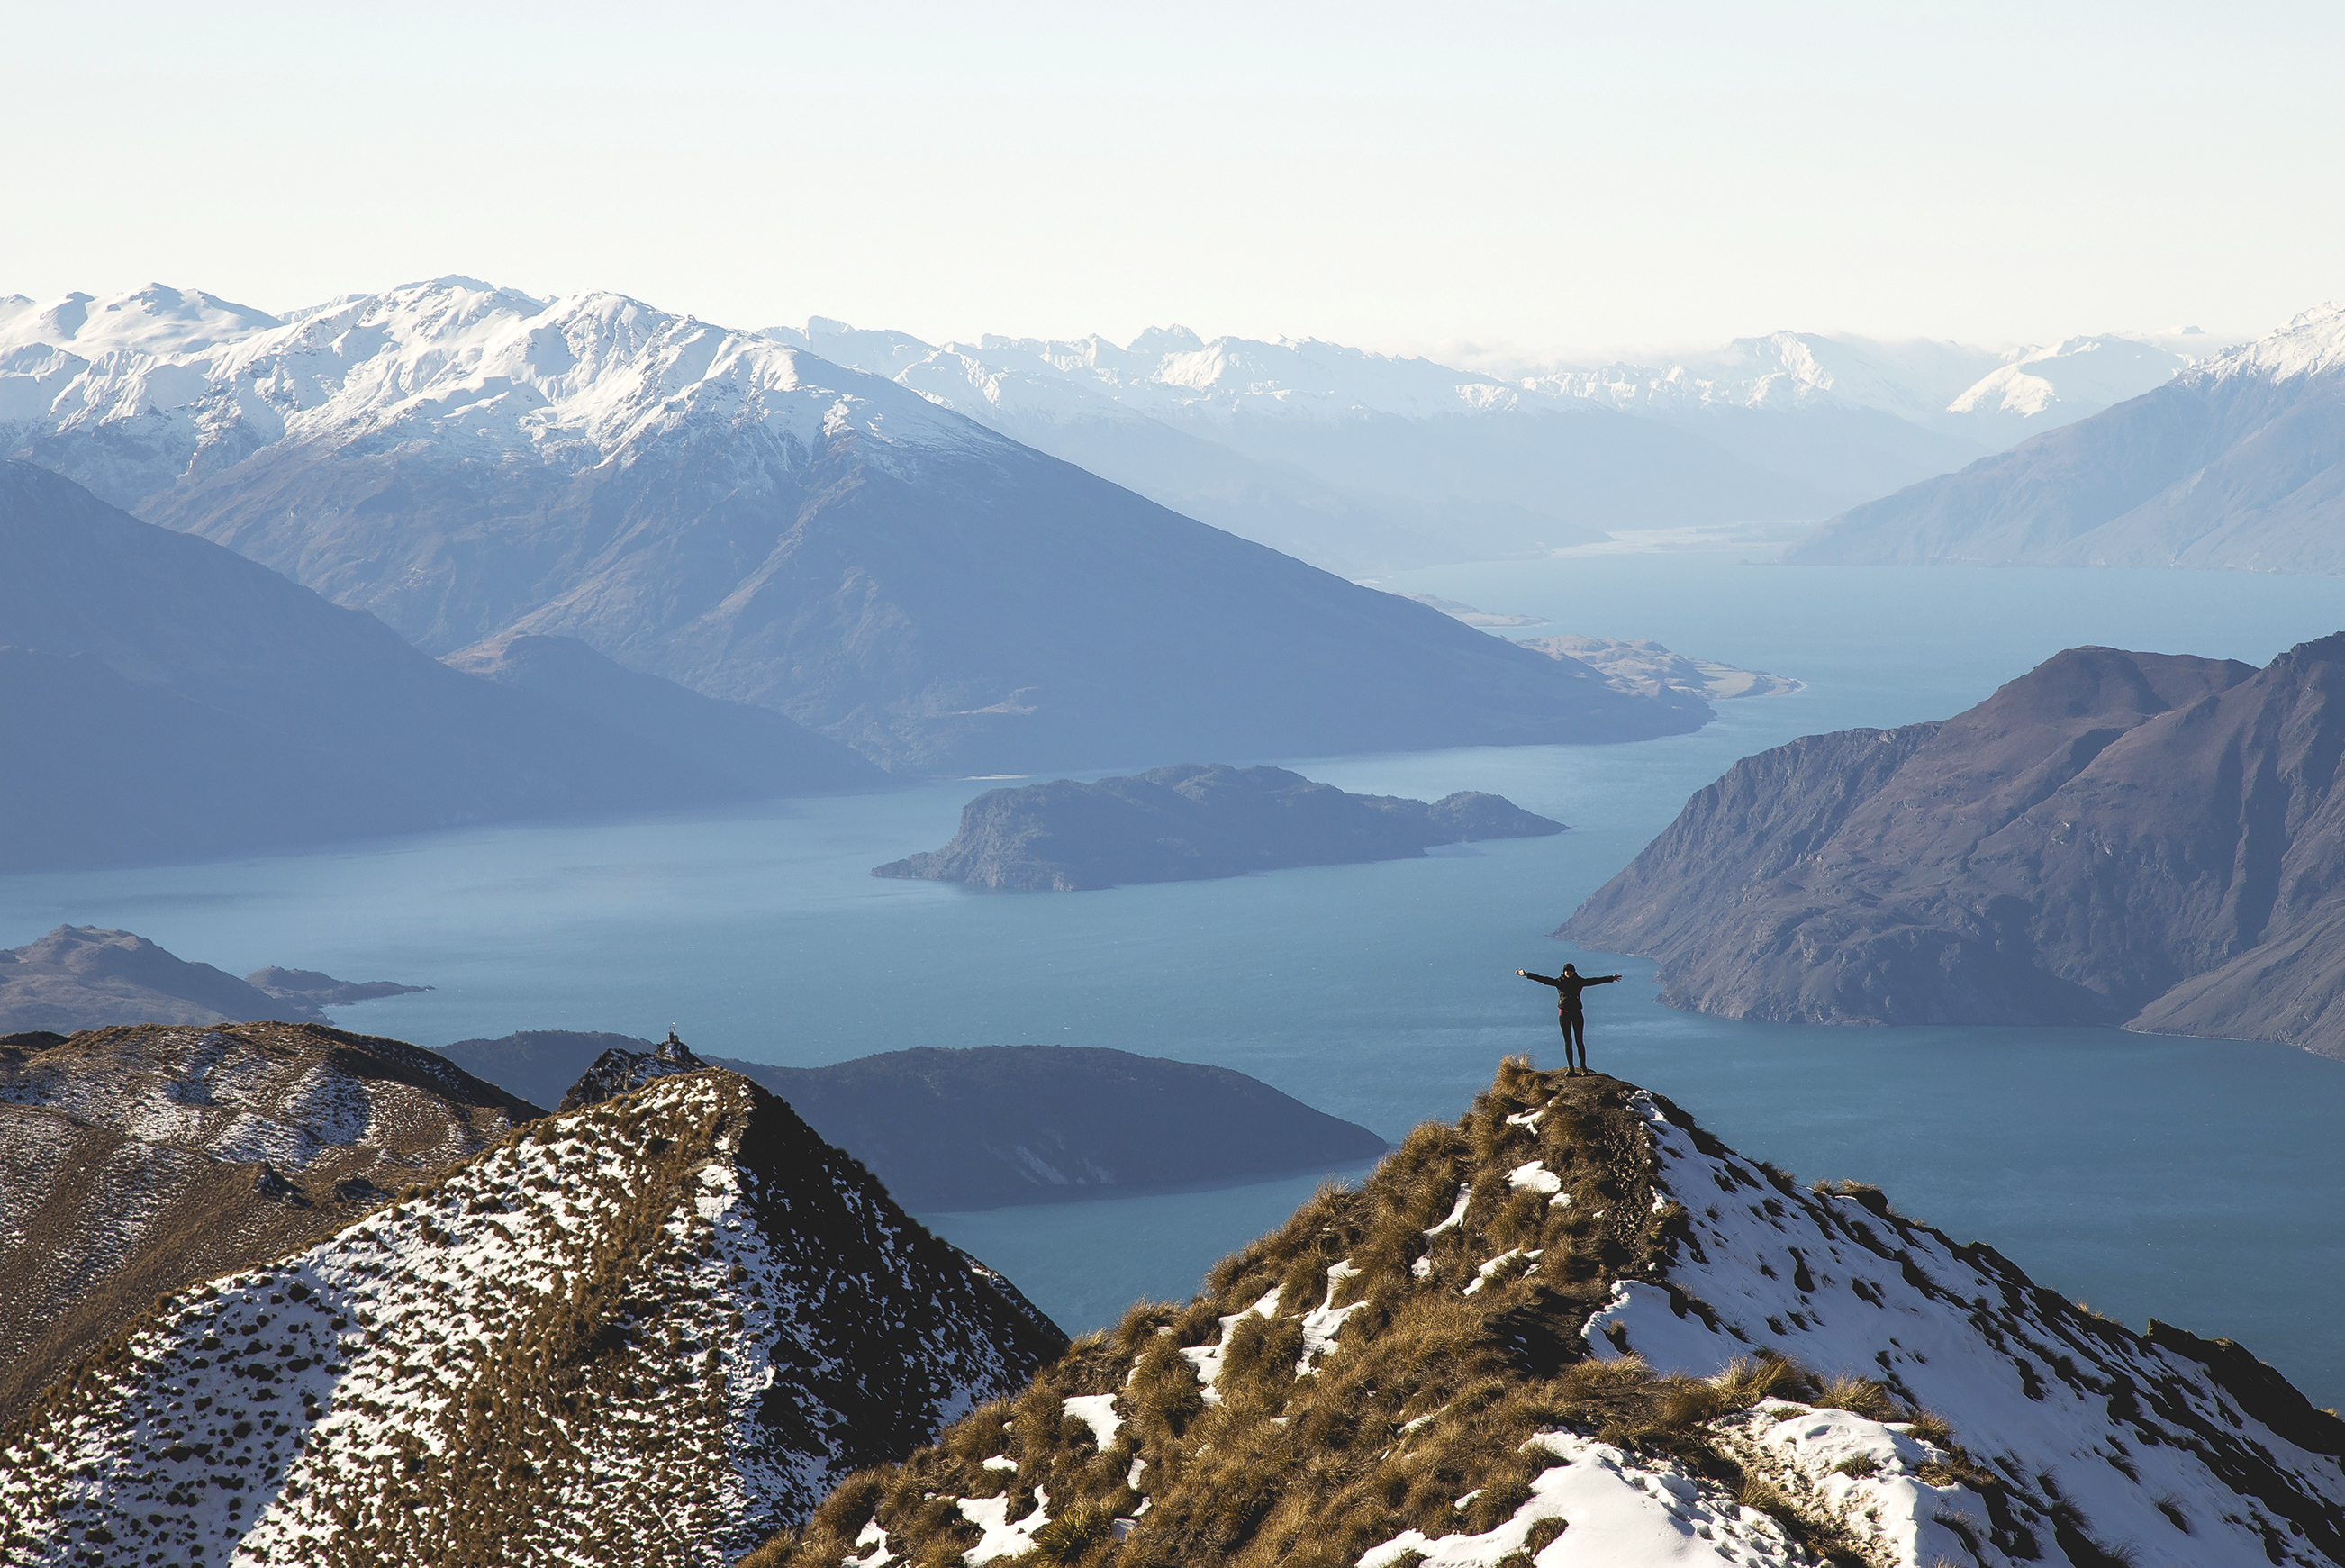 Person stands on a summit peak, arms outstretched, looking out to mountains and the sea.